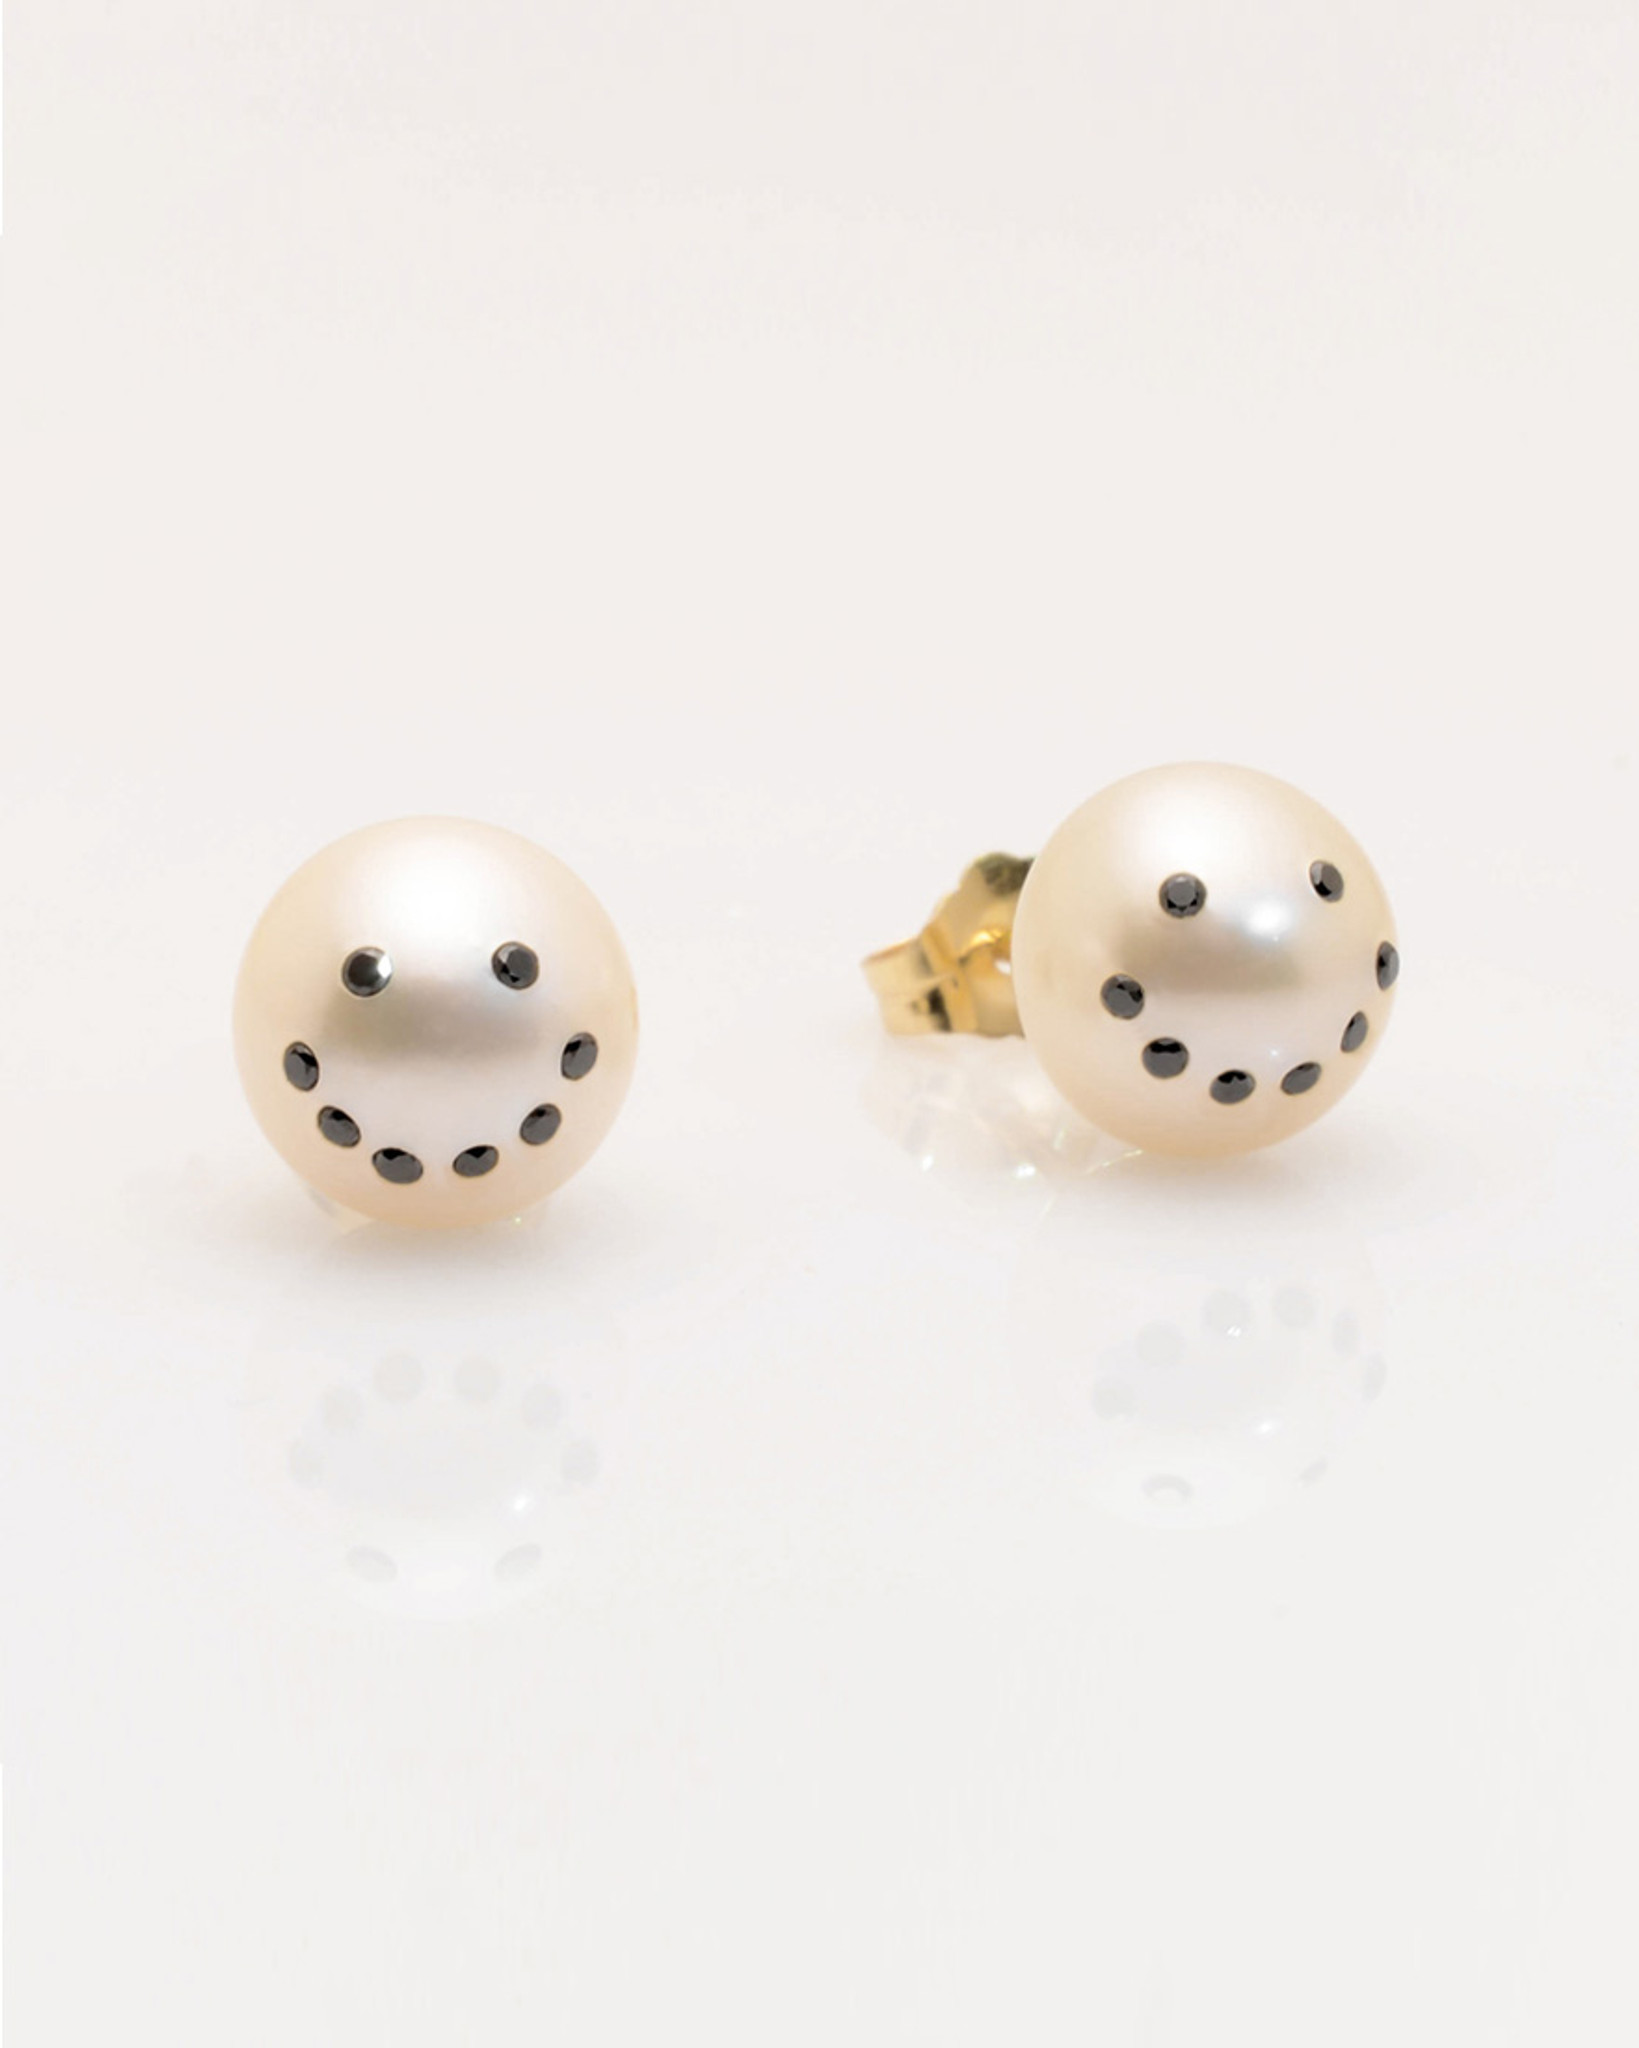 Front view of Cultured Freshwater Pearl Earrings with Smiley Emoji Diamond Pavè & 14k Gold Posts (8-9 mm) by Jewelry Designer Nektar De Stagni